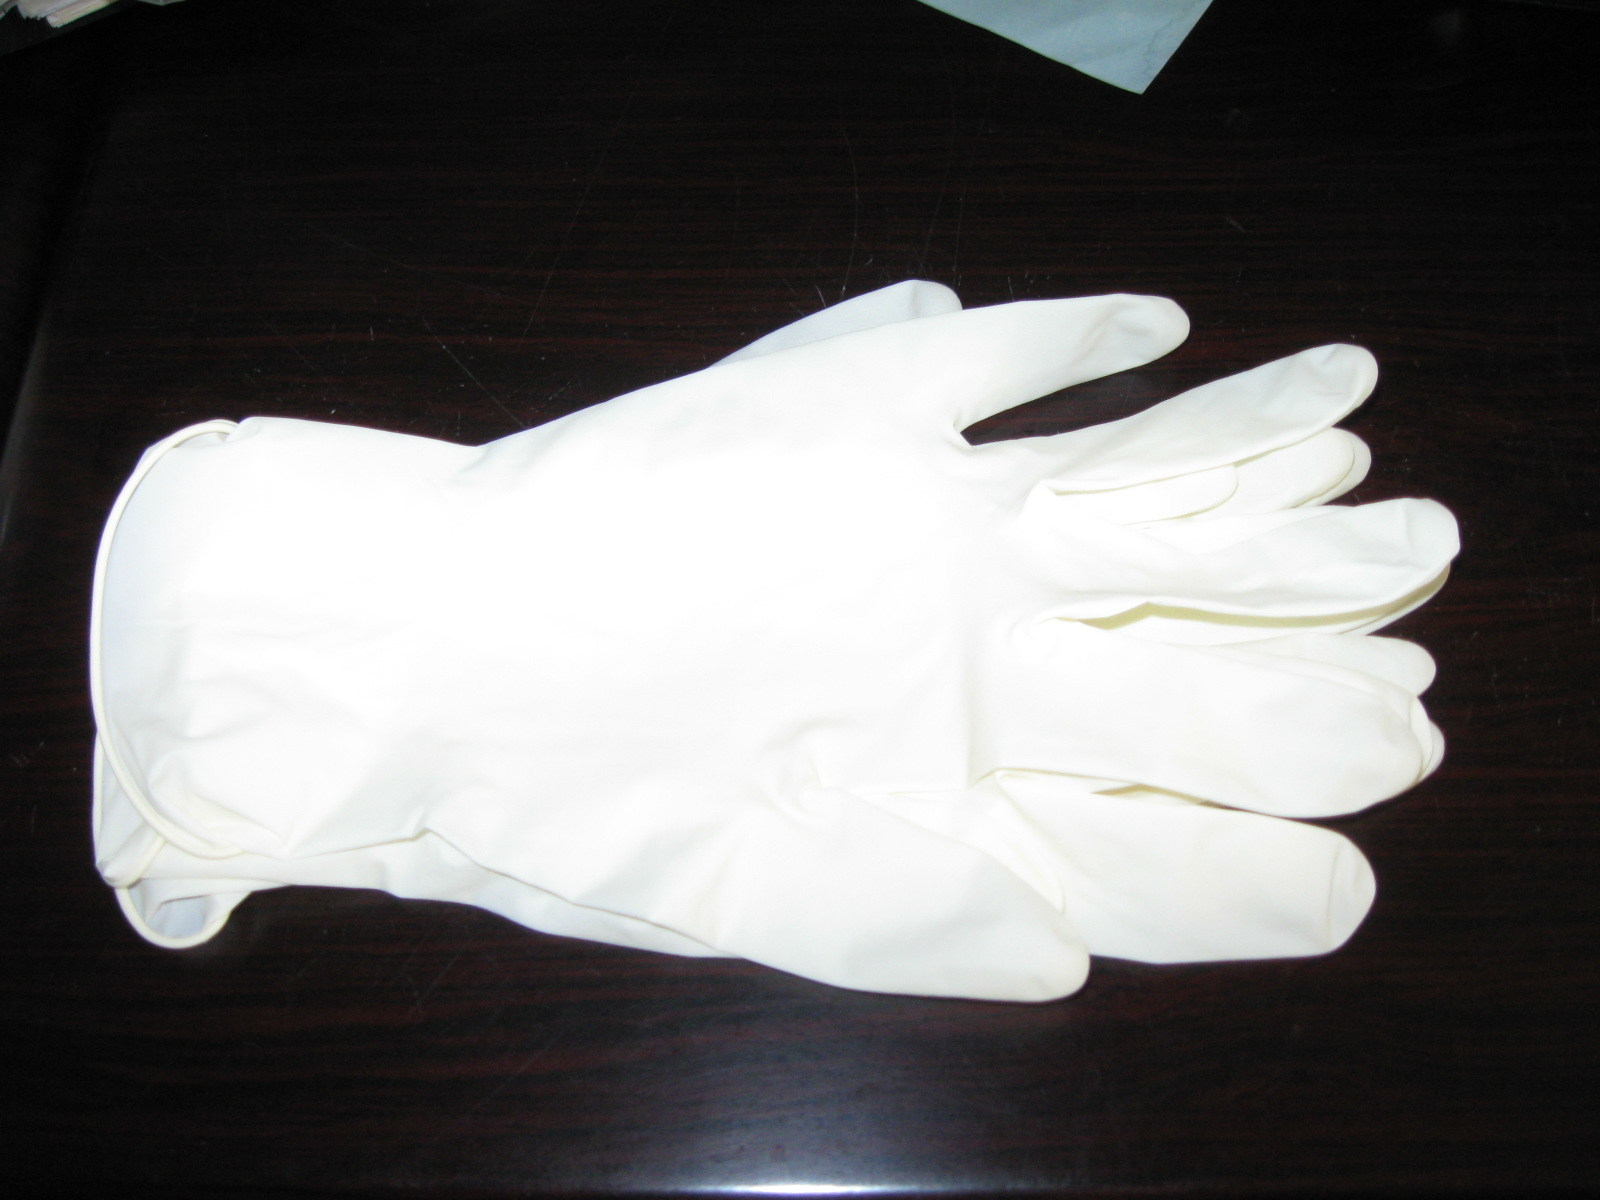 Top Cheaper Stock for Latex Examination Gloves 6.0gram Light Powder